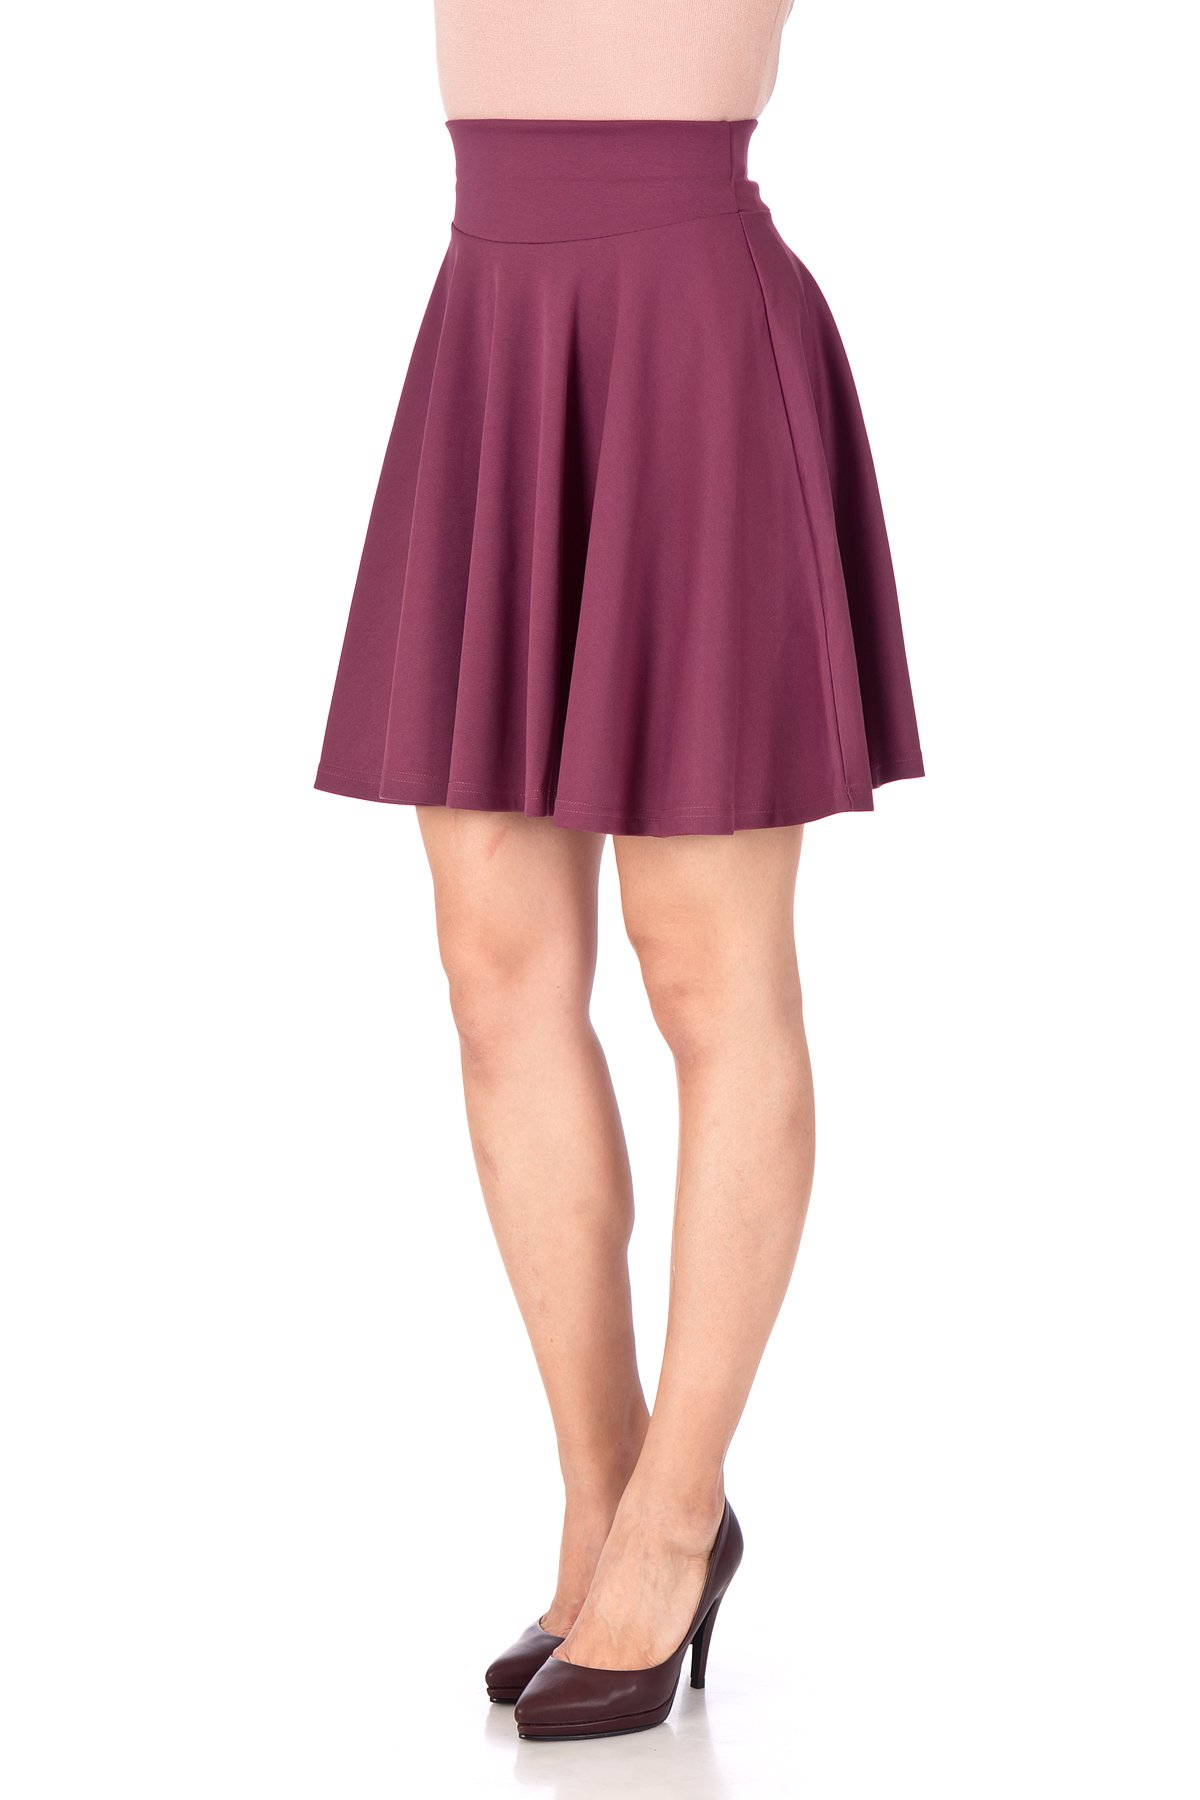 Breathtaking High Waist A line Circle Full Flared Skater Mini Skirt Hibiscus 06